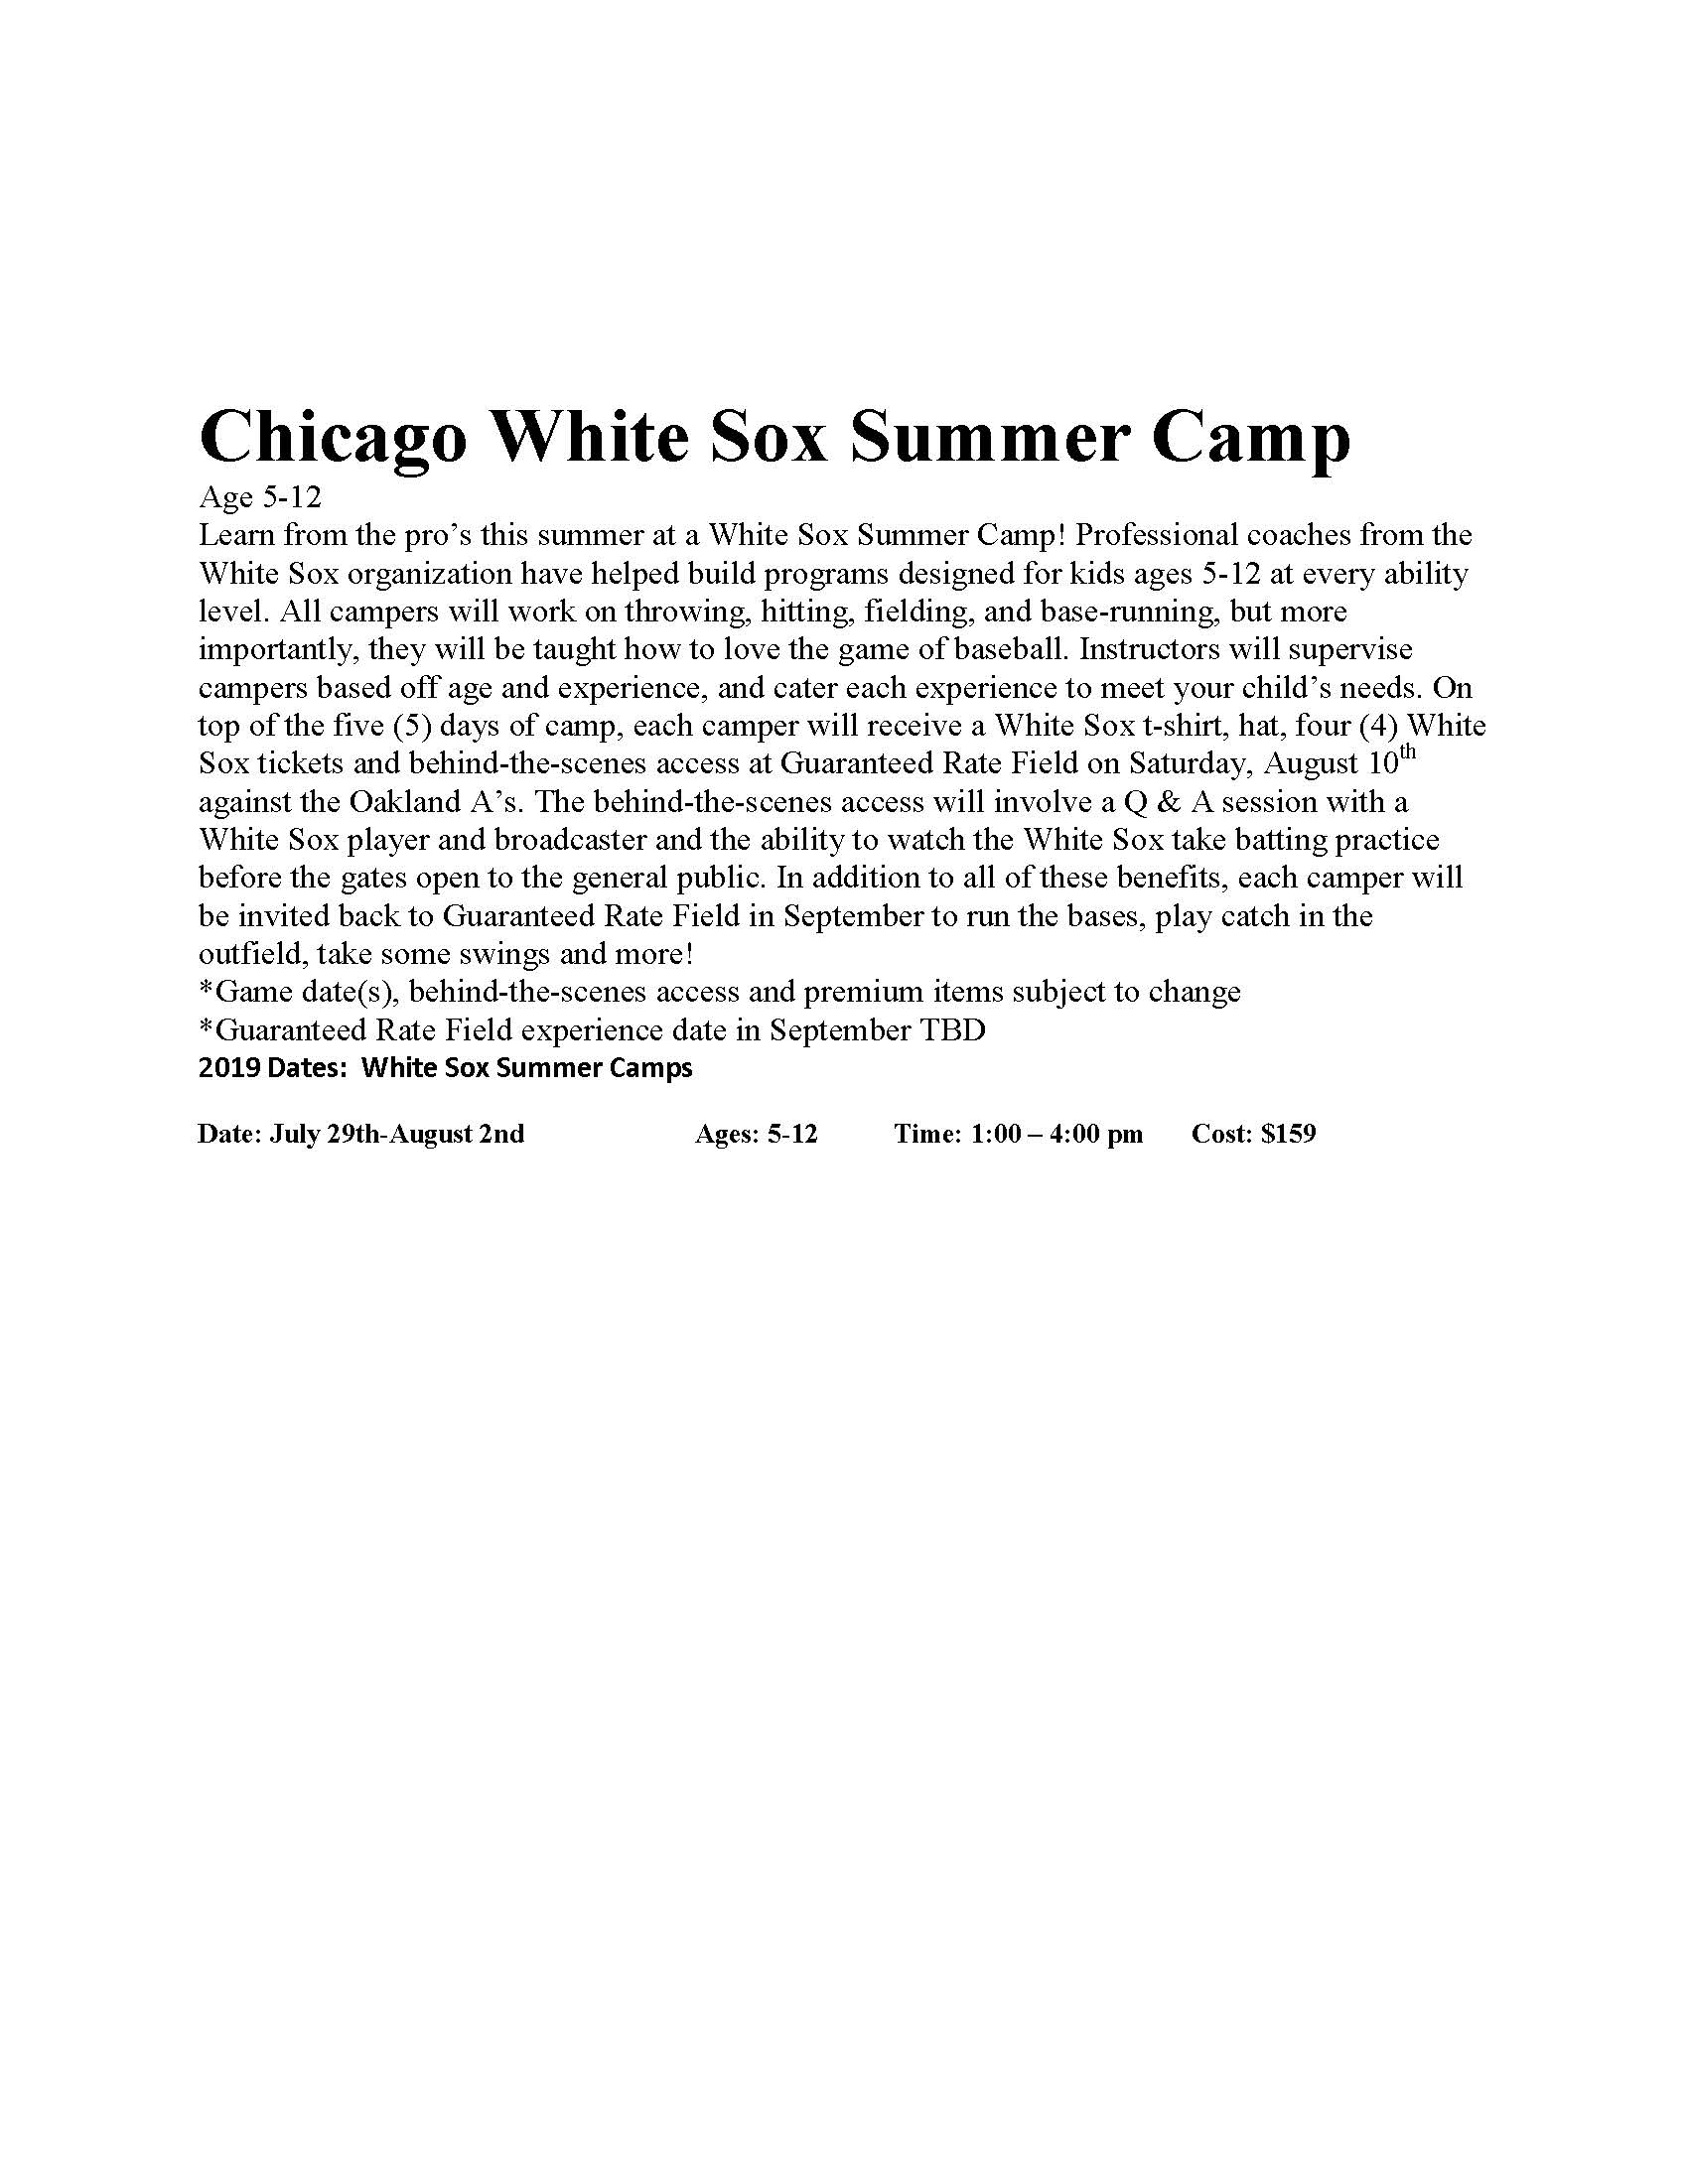 Chicago White Sox Summer Camp Flyer